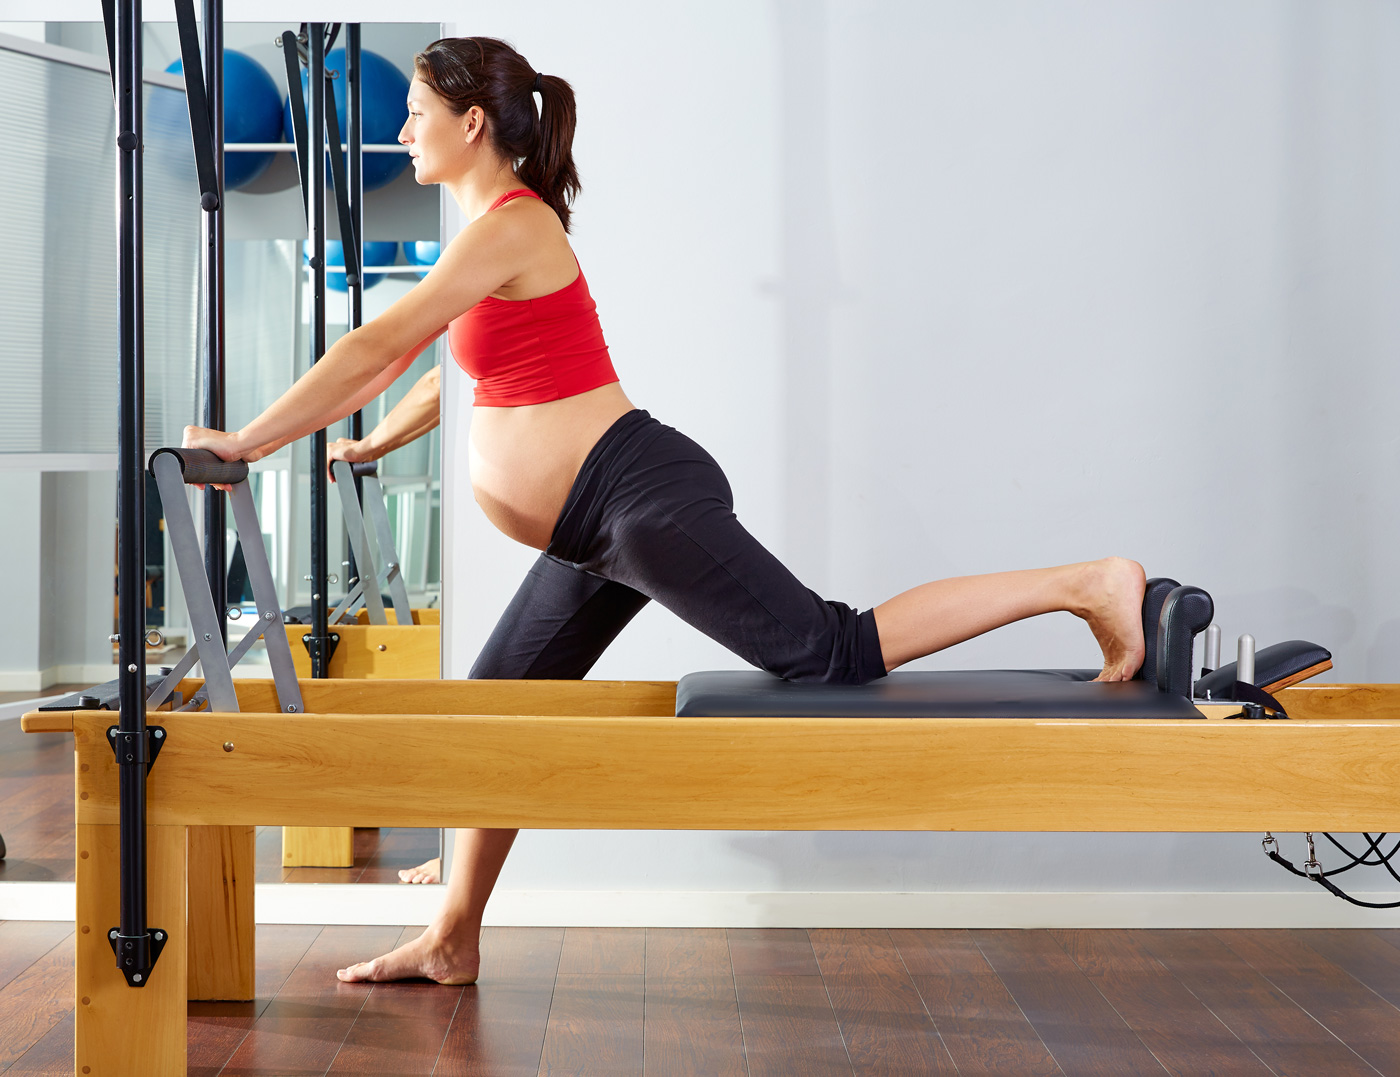 Pre / Postnatal Pilates Reformer Pilates In Leigh-on-Sea, Essex